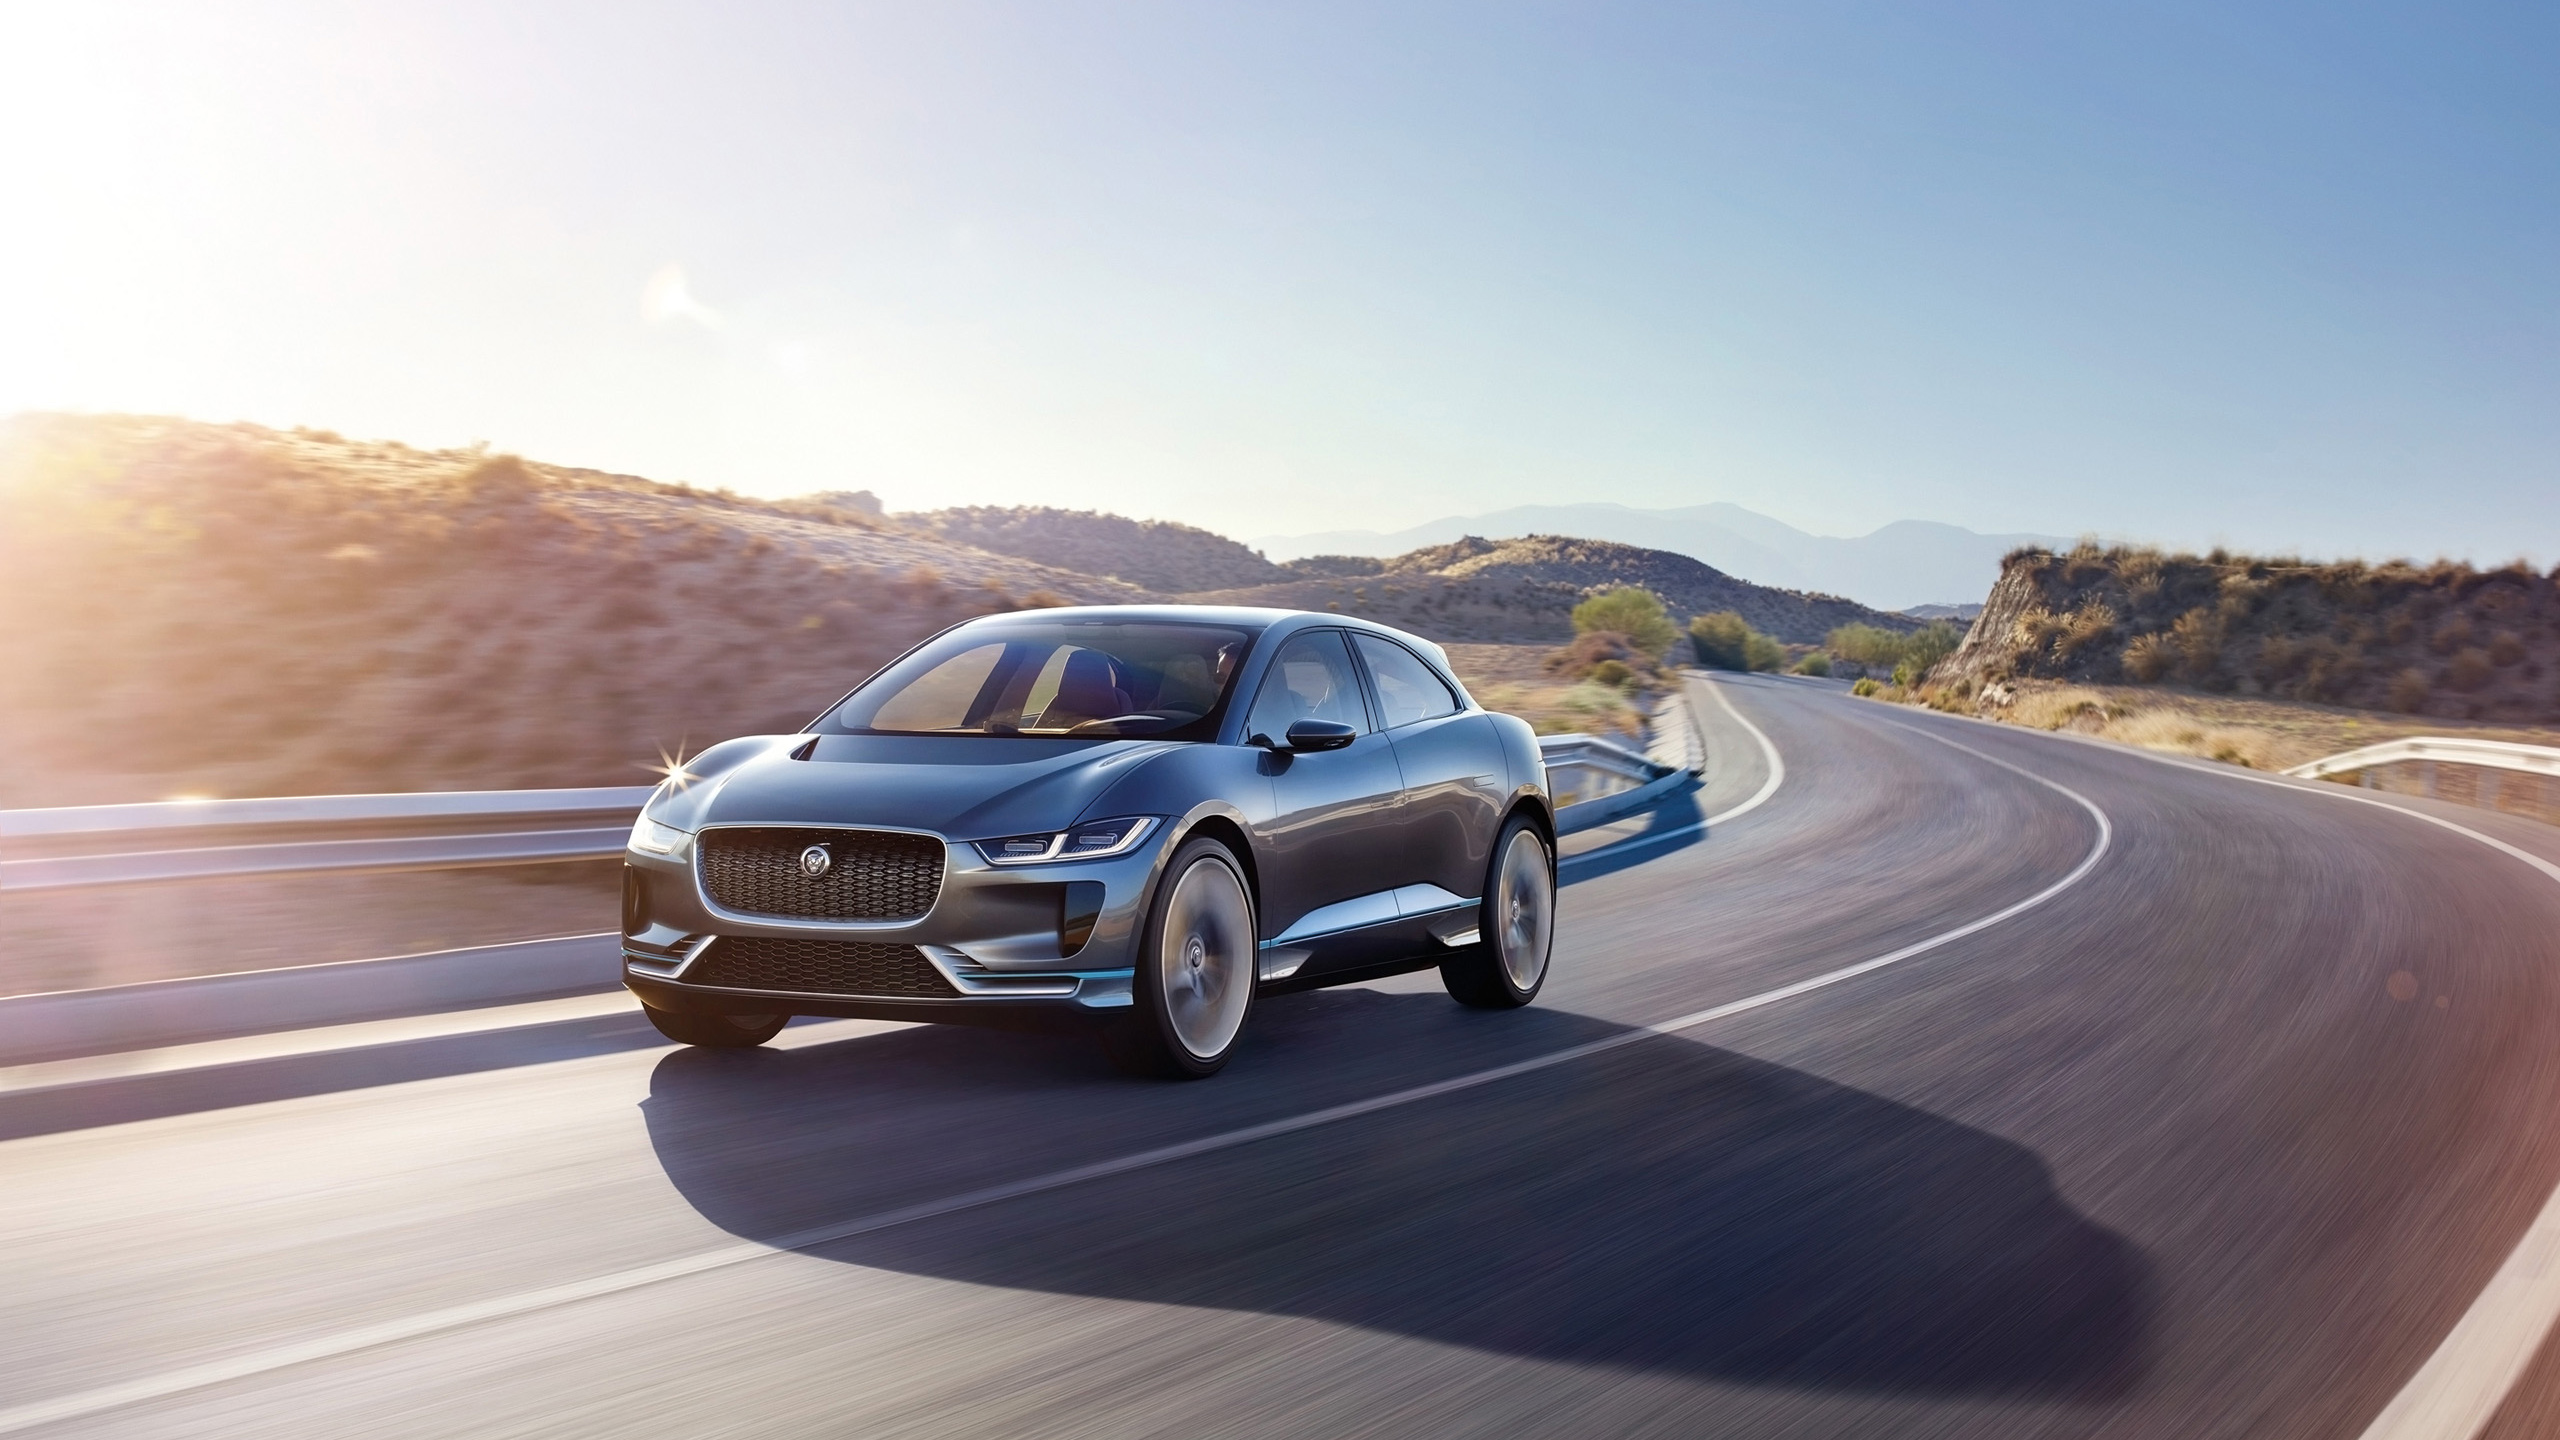 2018 Jaguar I Pace Concept Wallpaper